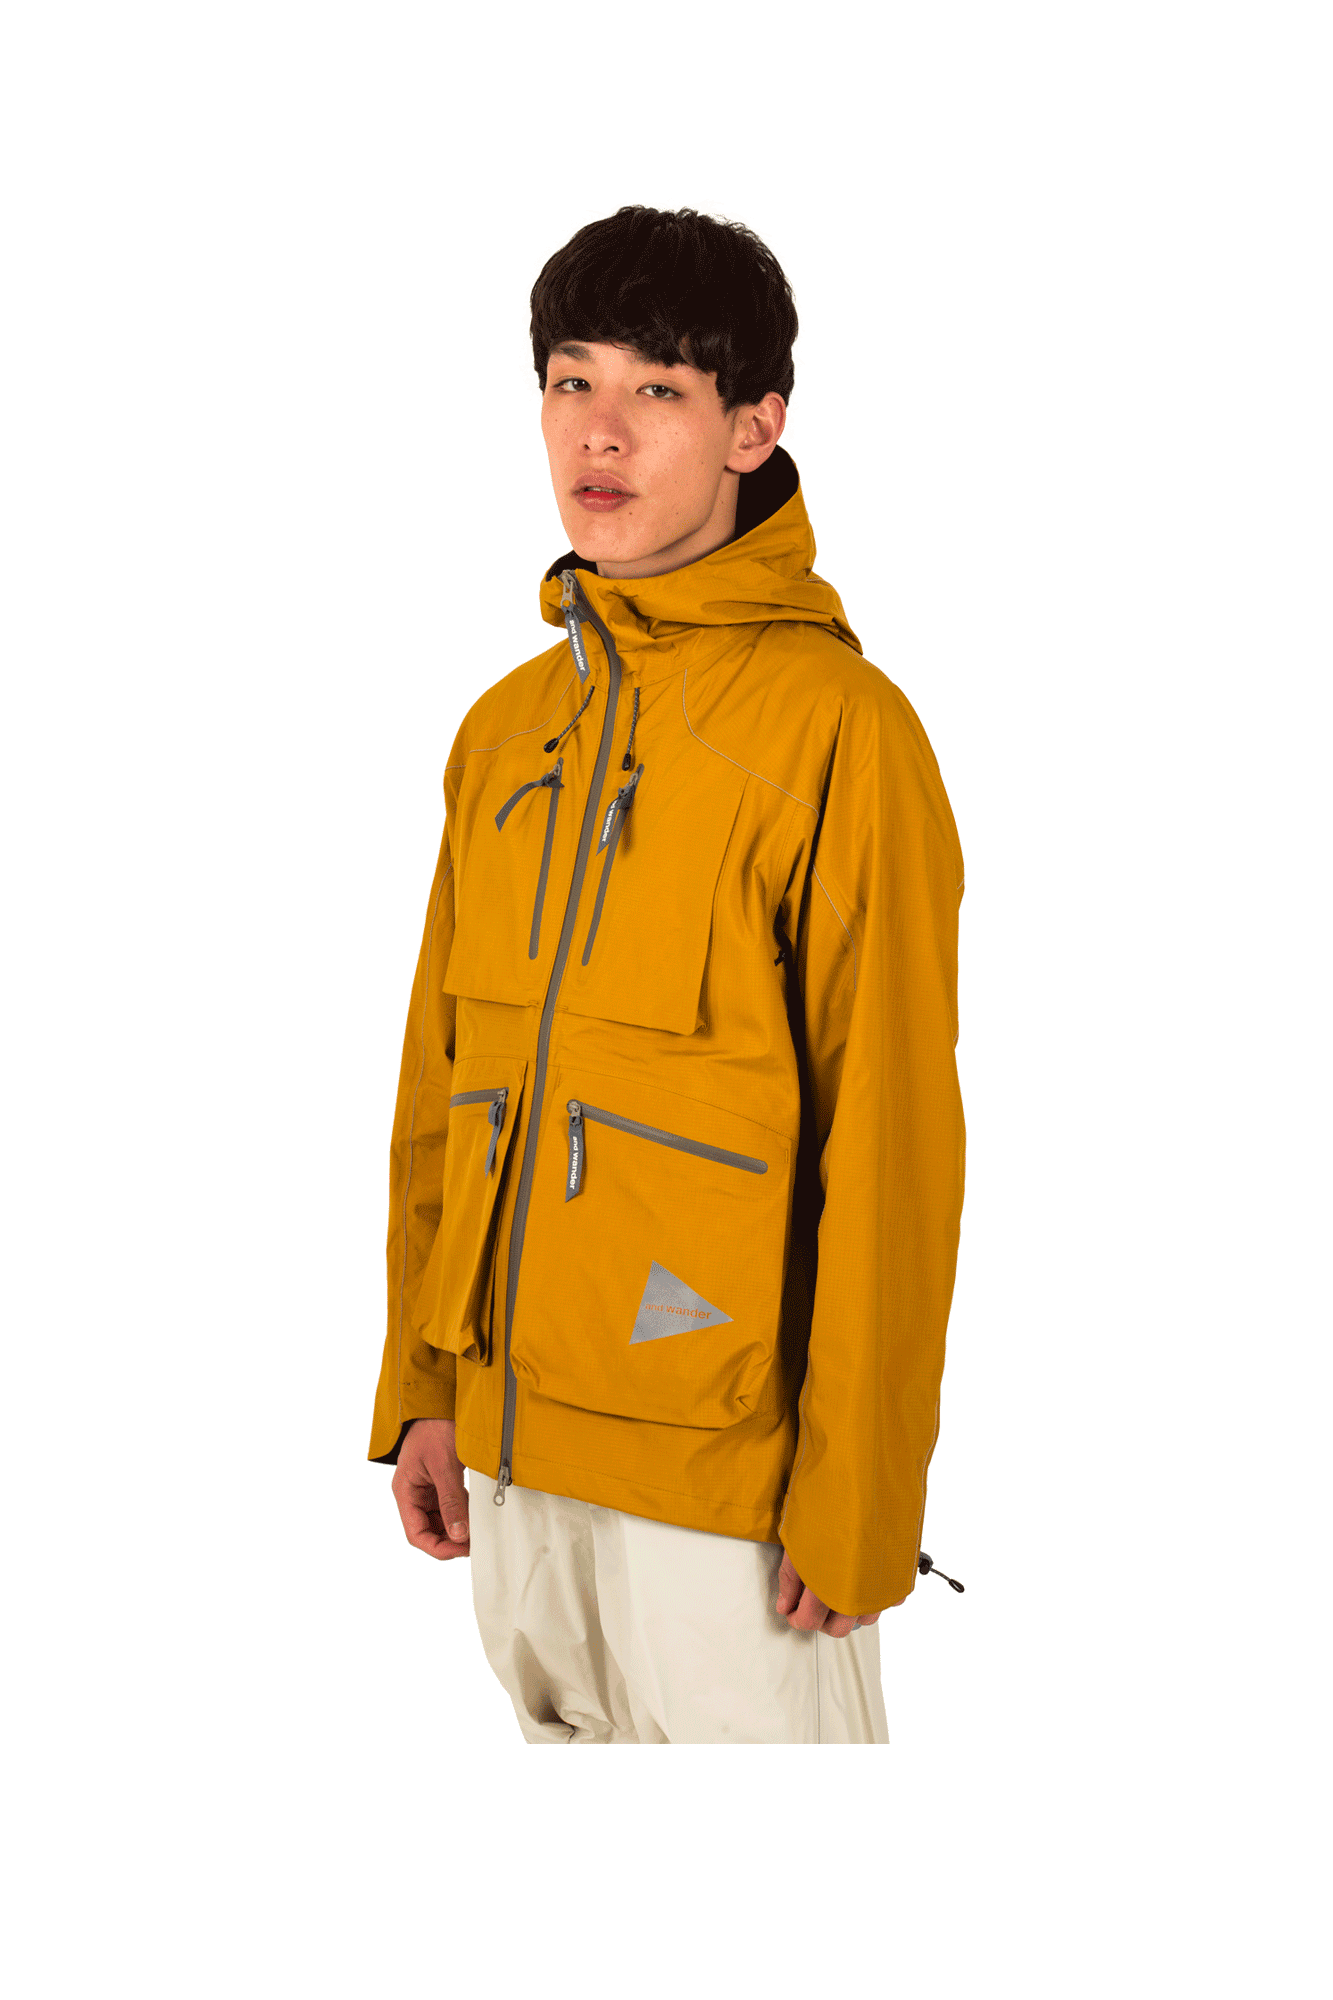 And Wander Coats & Jackets E Vent Pocket Rain Jkt Yellow AW91-FT001#000#YLW#3 - One Block Down